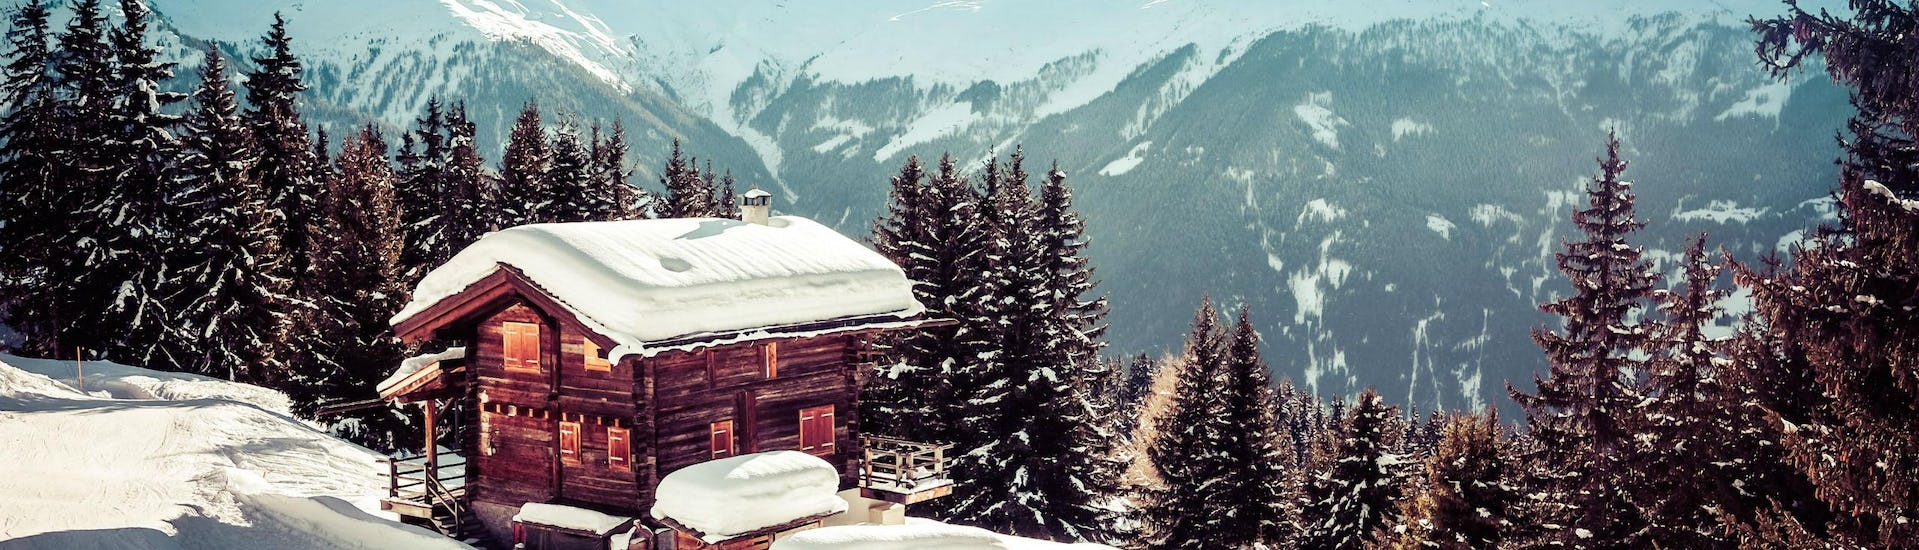 An image of a lone snowboarder boarding past a small mountain hut in the swiss ski resort of Verbier, where where visitors can learn to ski during their ski lessons provided by local ski schools.